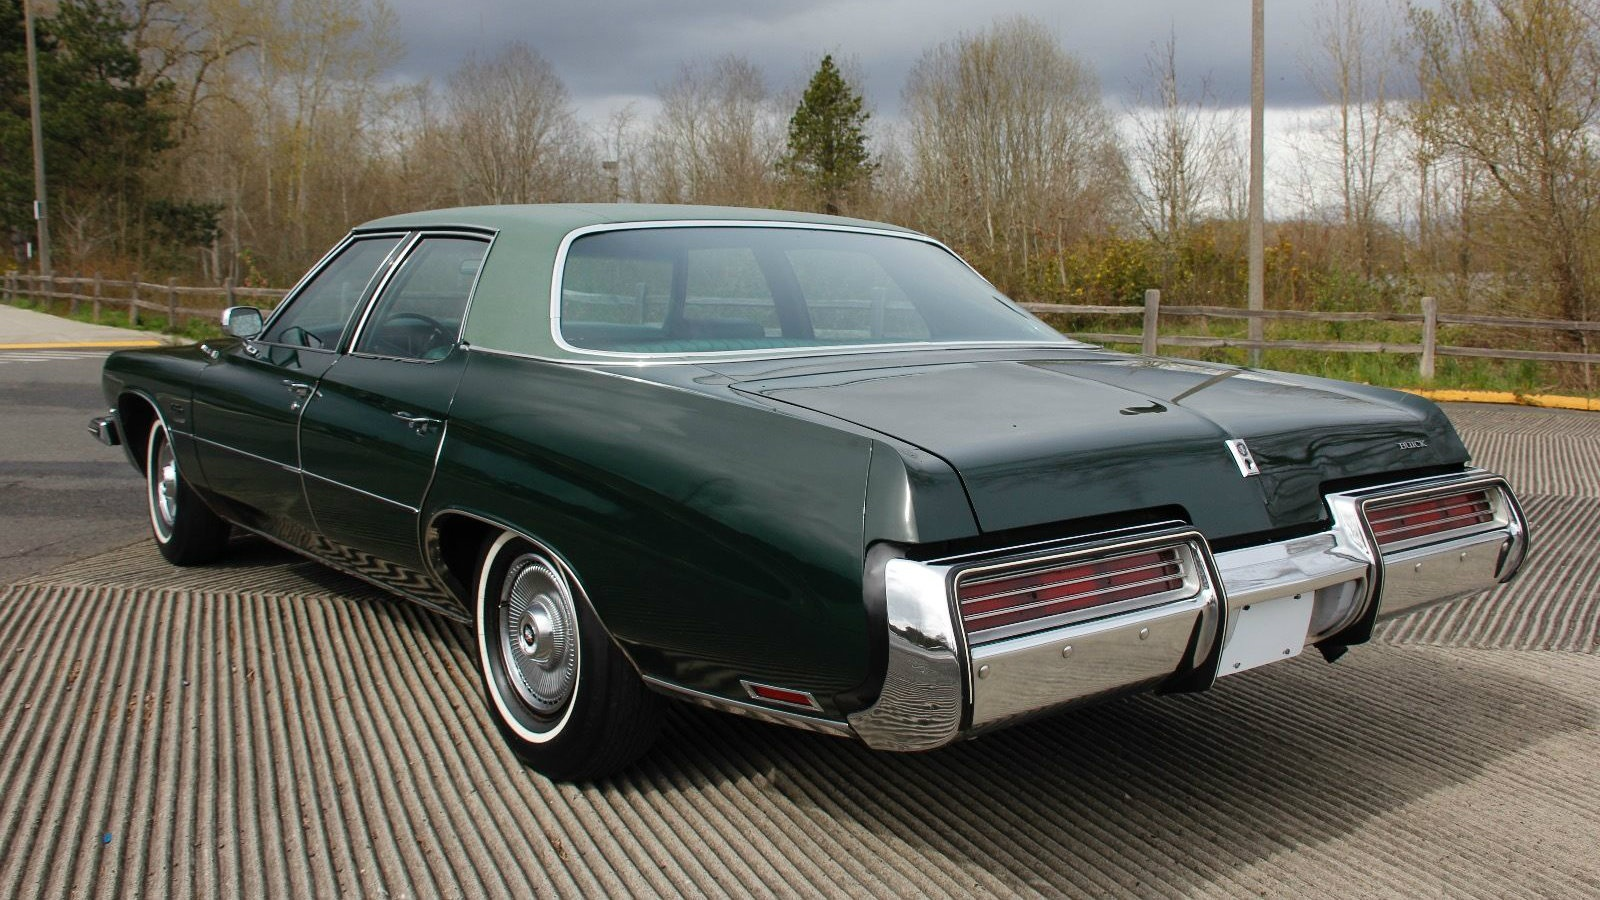 T on 1976 Buick Lesabre